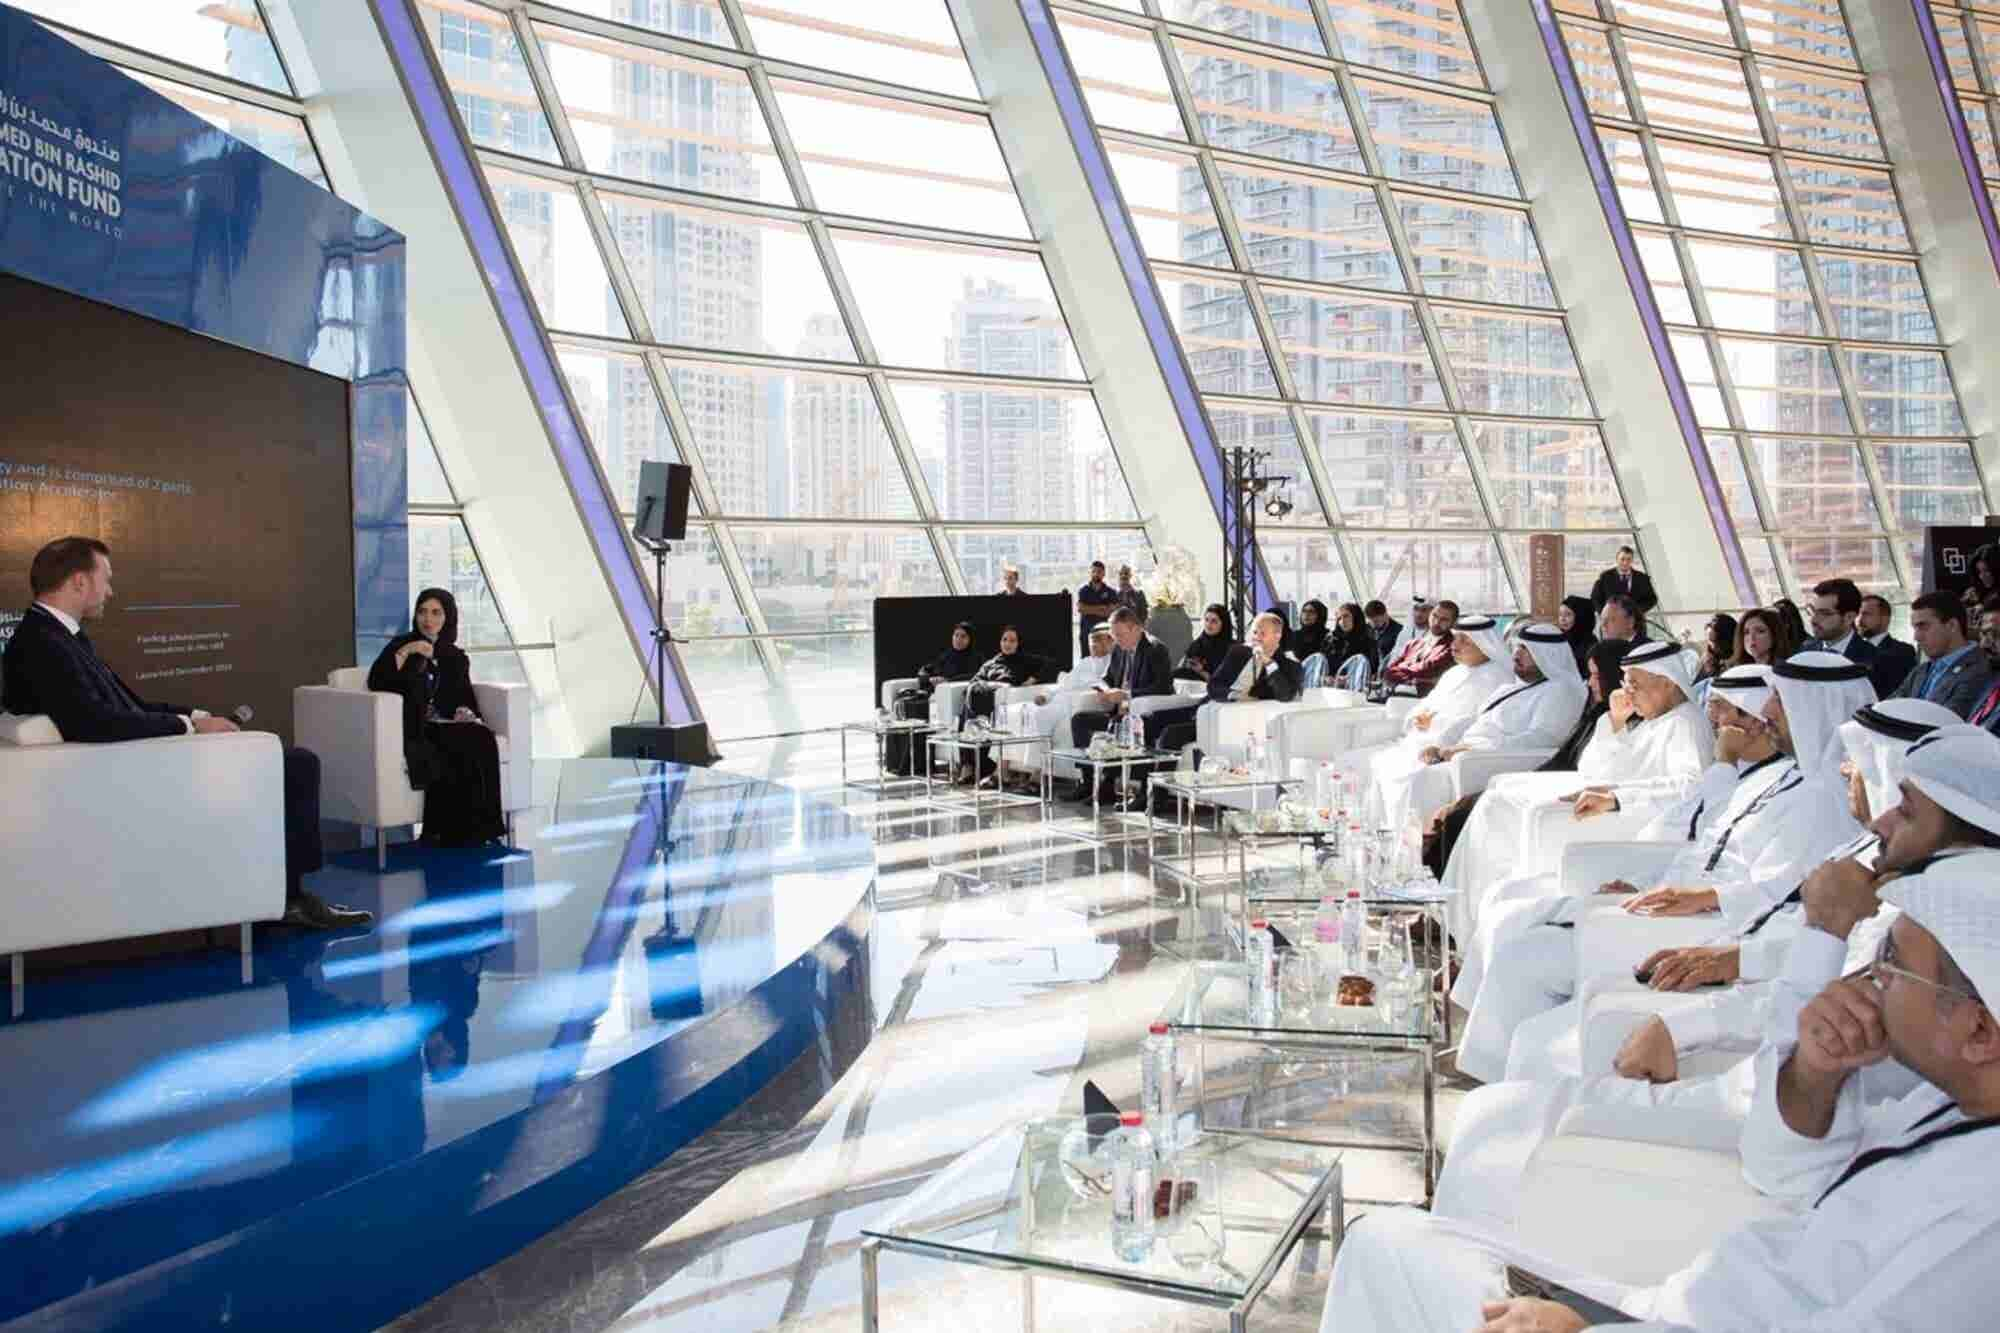 UAE Ministry of Finance Launches Mohammed Bin Rashid Innovation Fund Accelerator